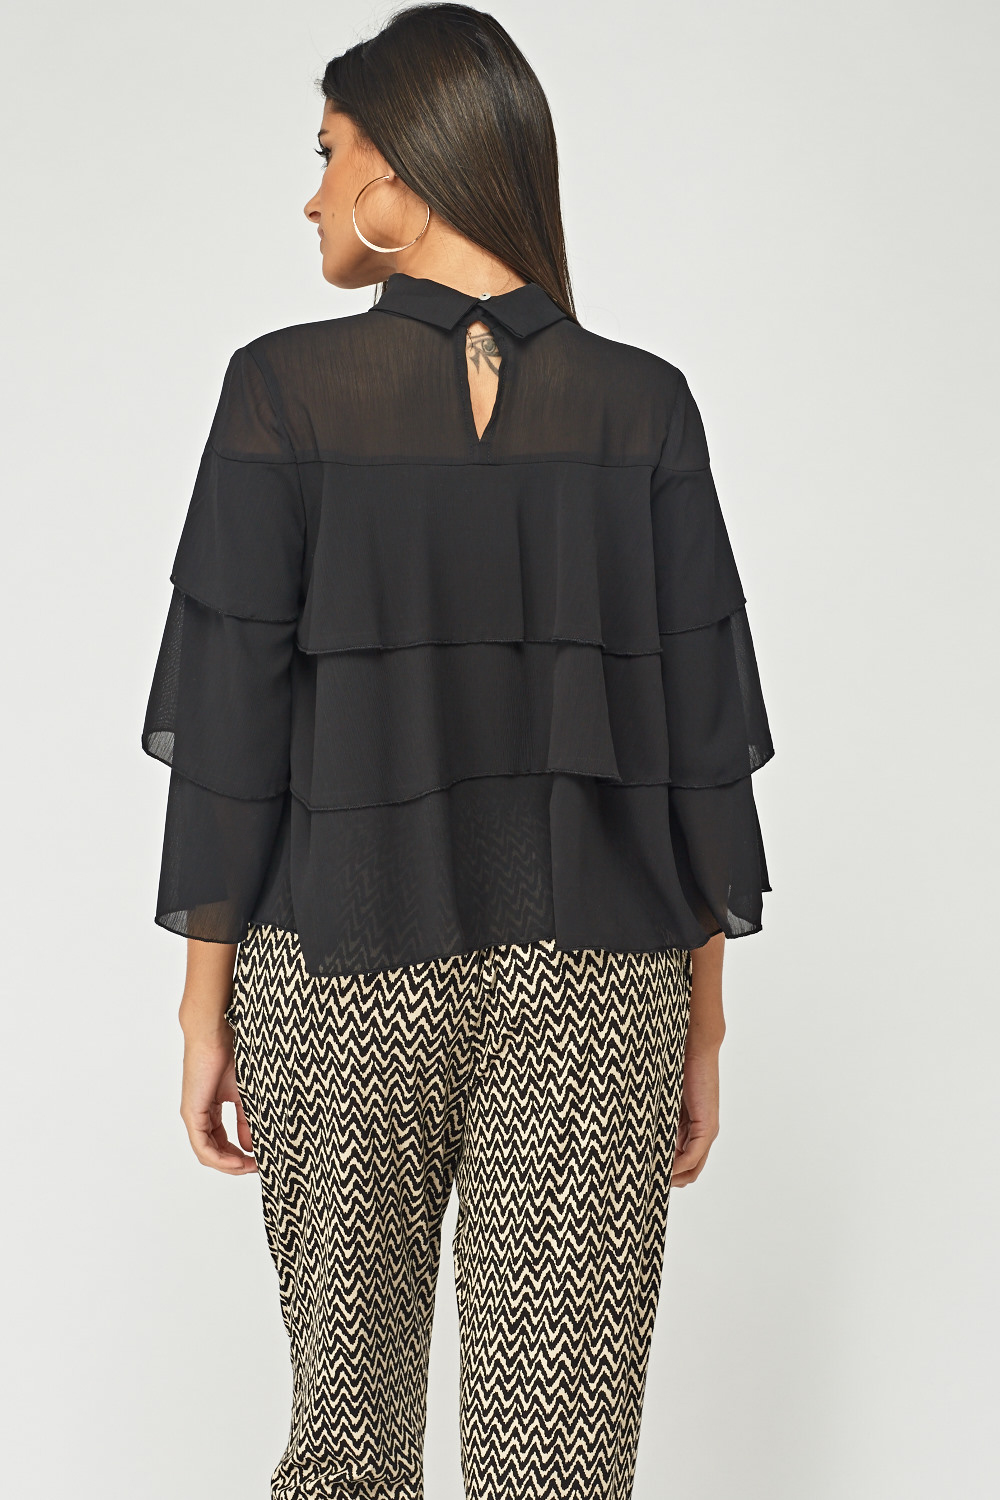 1f6d7673a6abdc Frilly Layered Blouse - Just £5